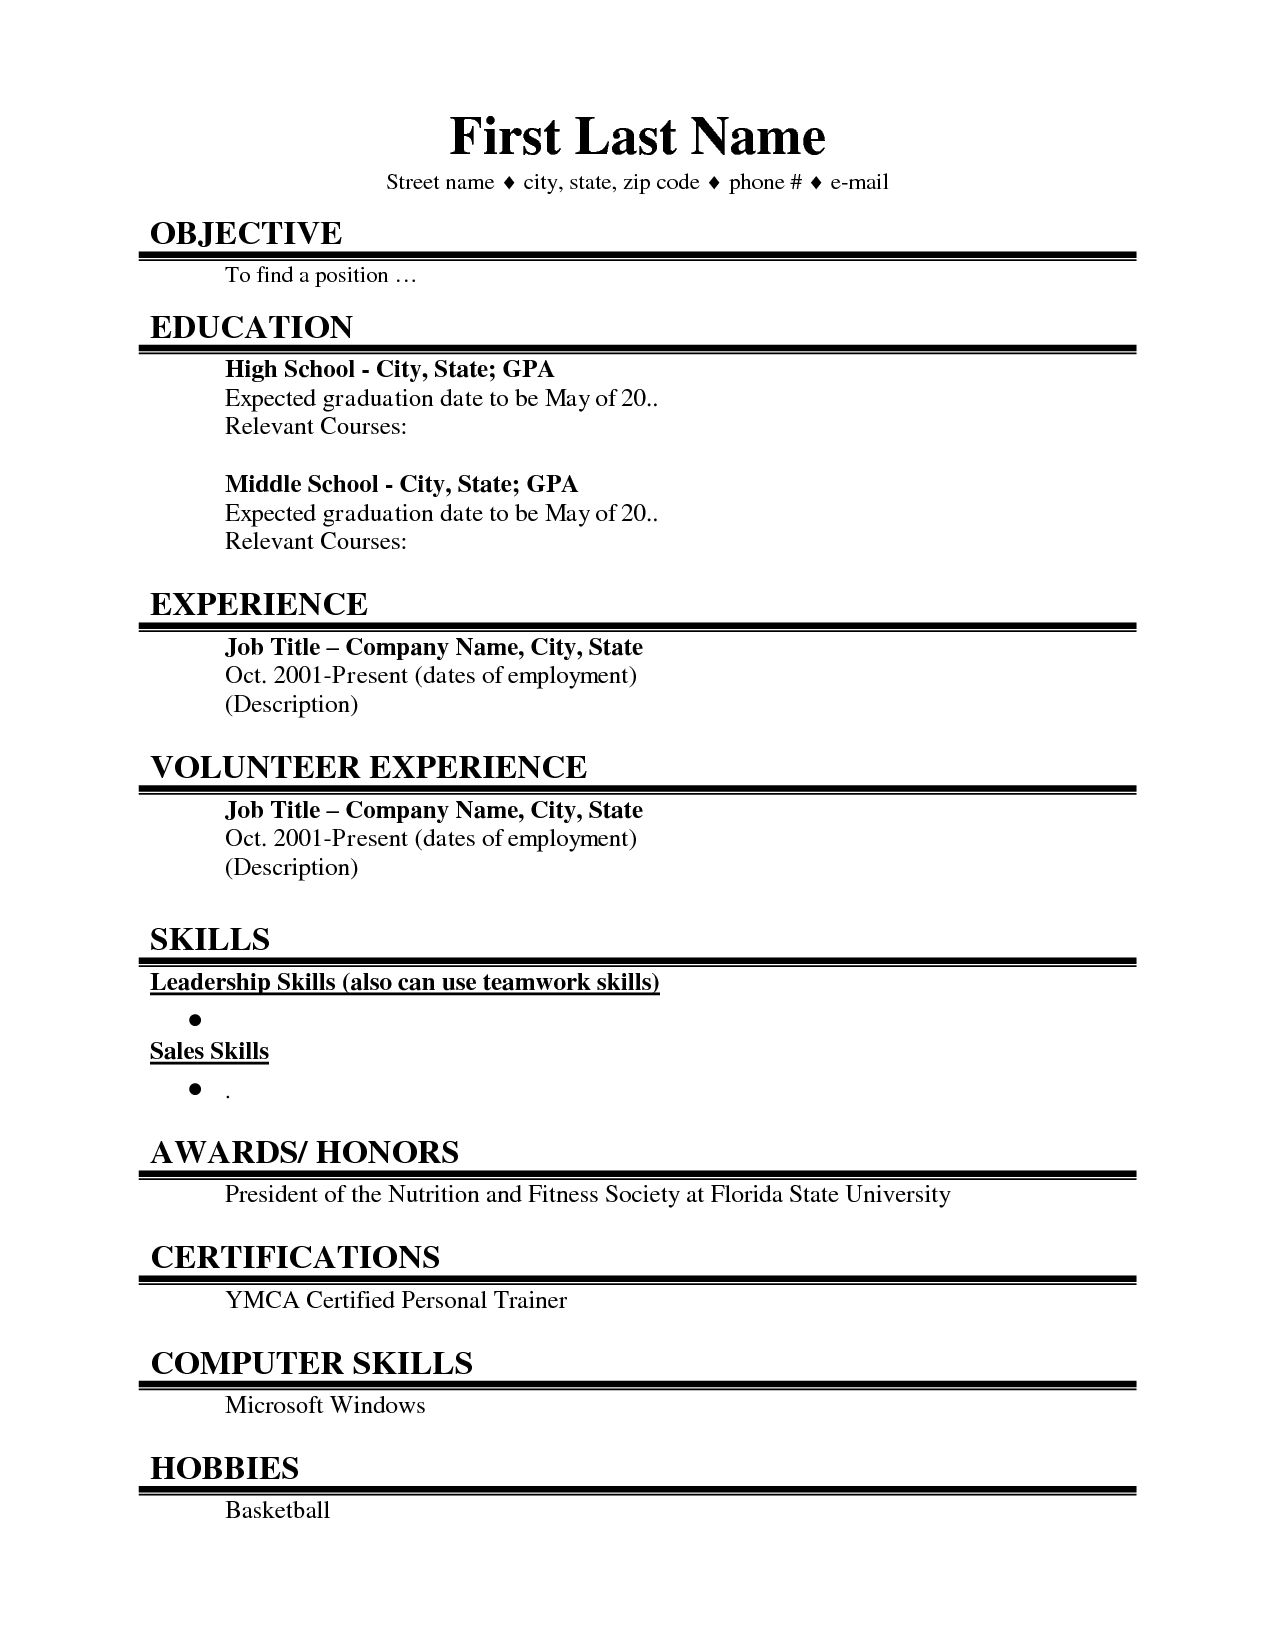 Resume For A Student | Resume CV Cover Letter